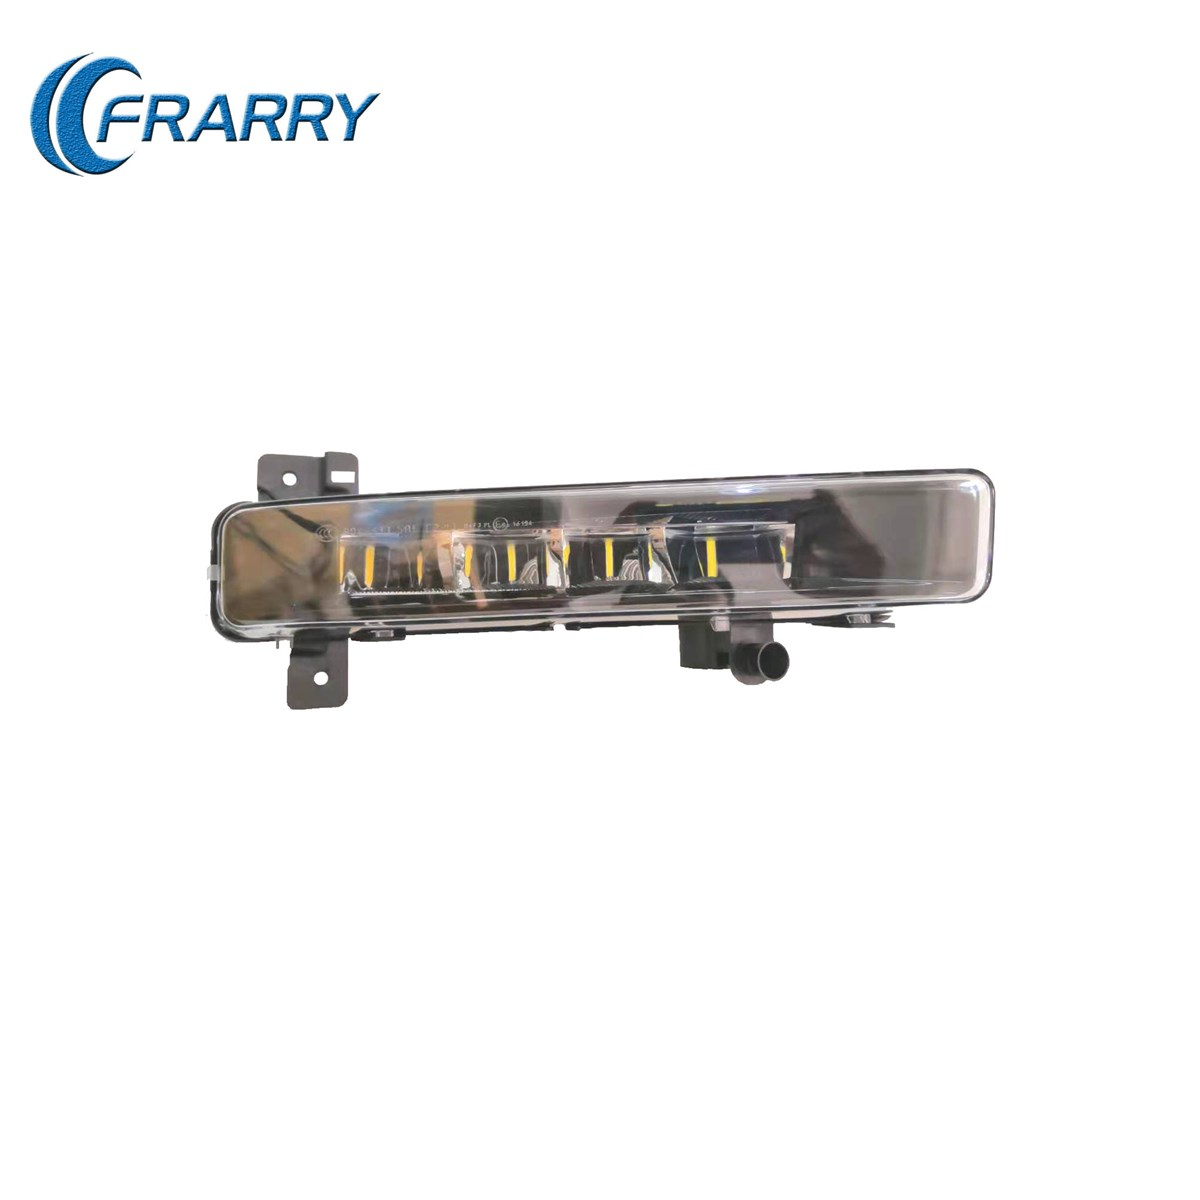 Foglight Assembly 63179477172 R For F10 Frarry